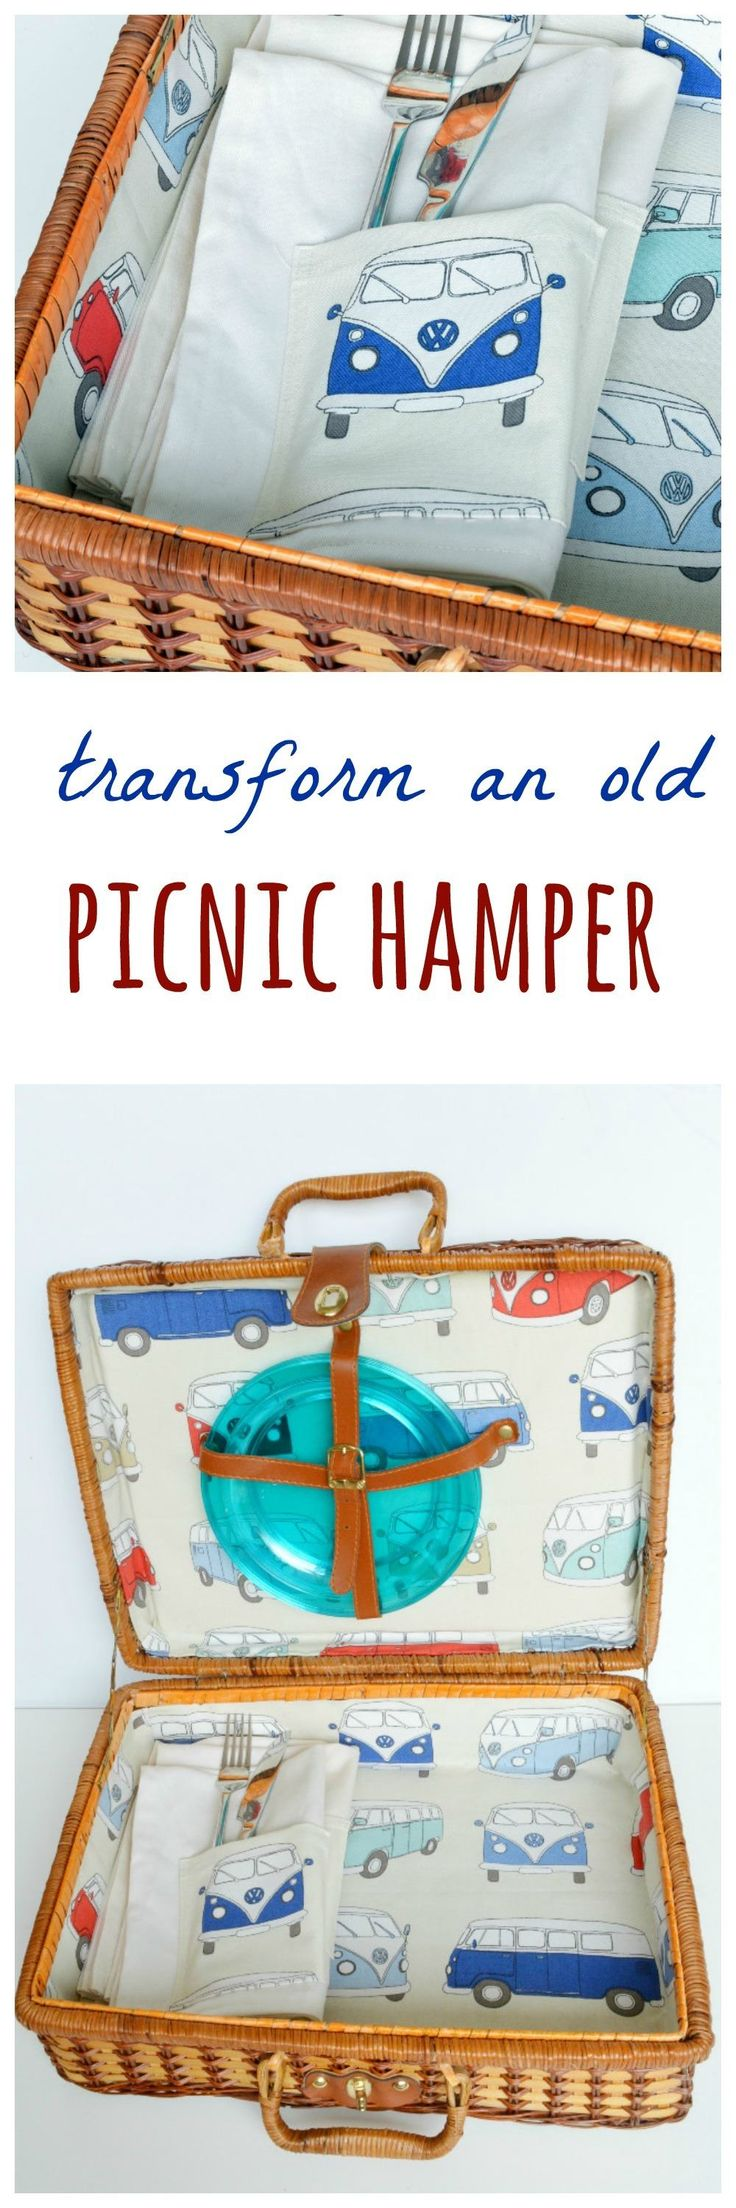 "Transform an old picnic hamper - using fresh fabric and an old belt your picnic hamper will look as good as new. Find a full tutorial for the lining of a picnic hamper here and visit the collaborative board ""DIY bloggers for Volkswagen"" for more inspiring DIY instructions and ideas:https://uk.pinterest.com/volkswagen/diy-bloggers-for-volkswagen/"